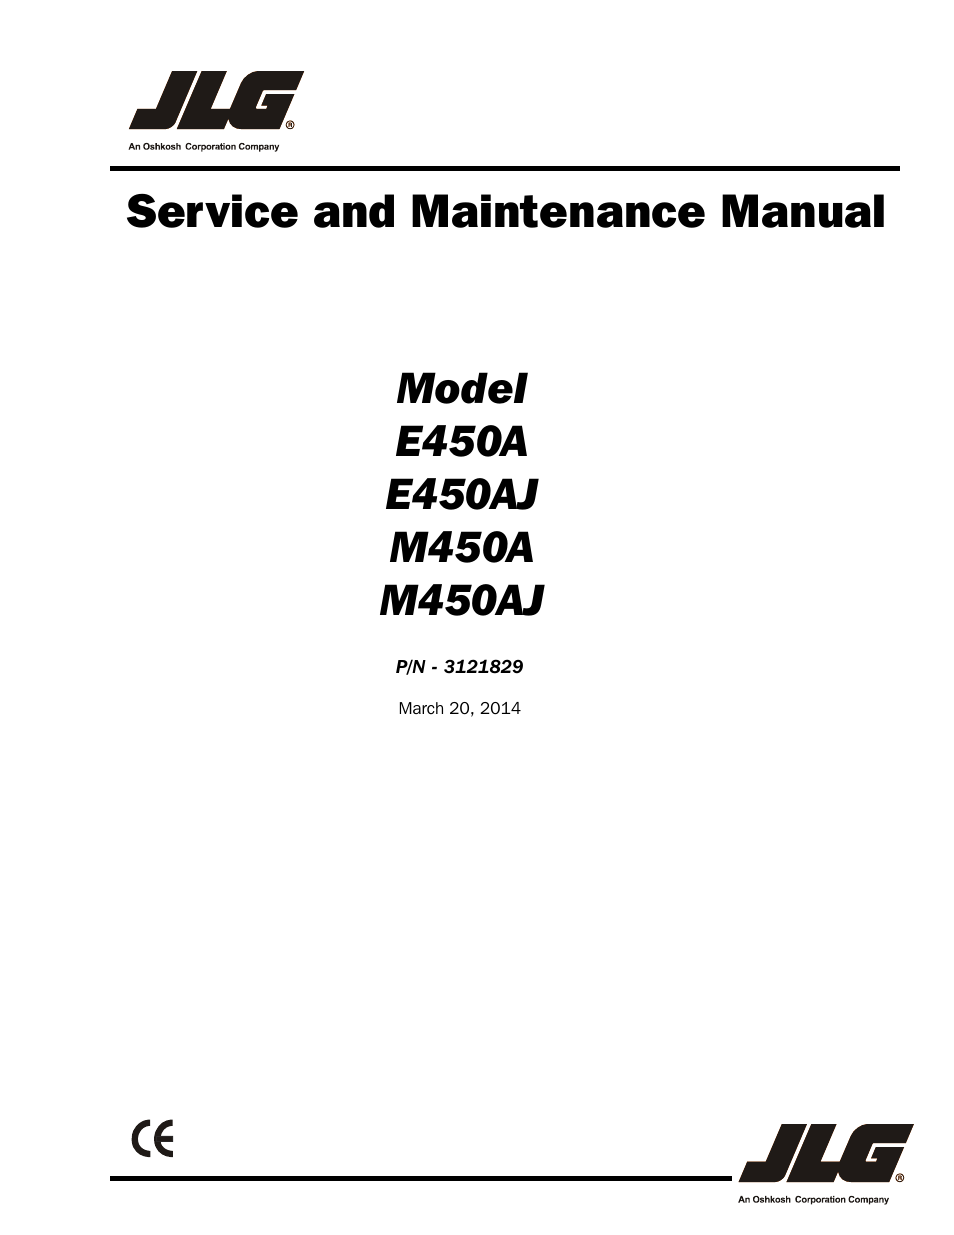 JLG M450 Service Manual User Manual | 256 pages | Also for: E450 Service  Manual